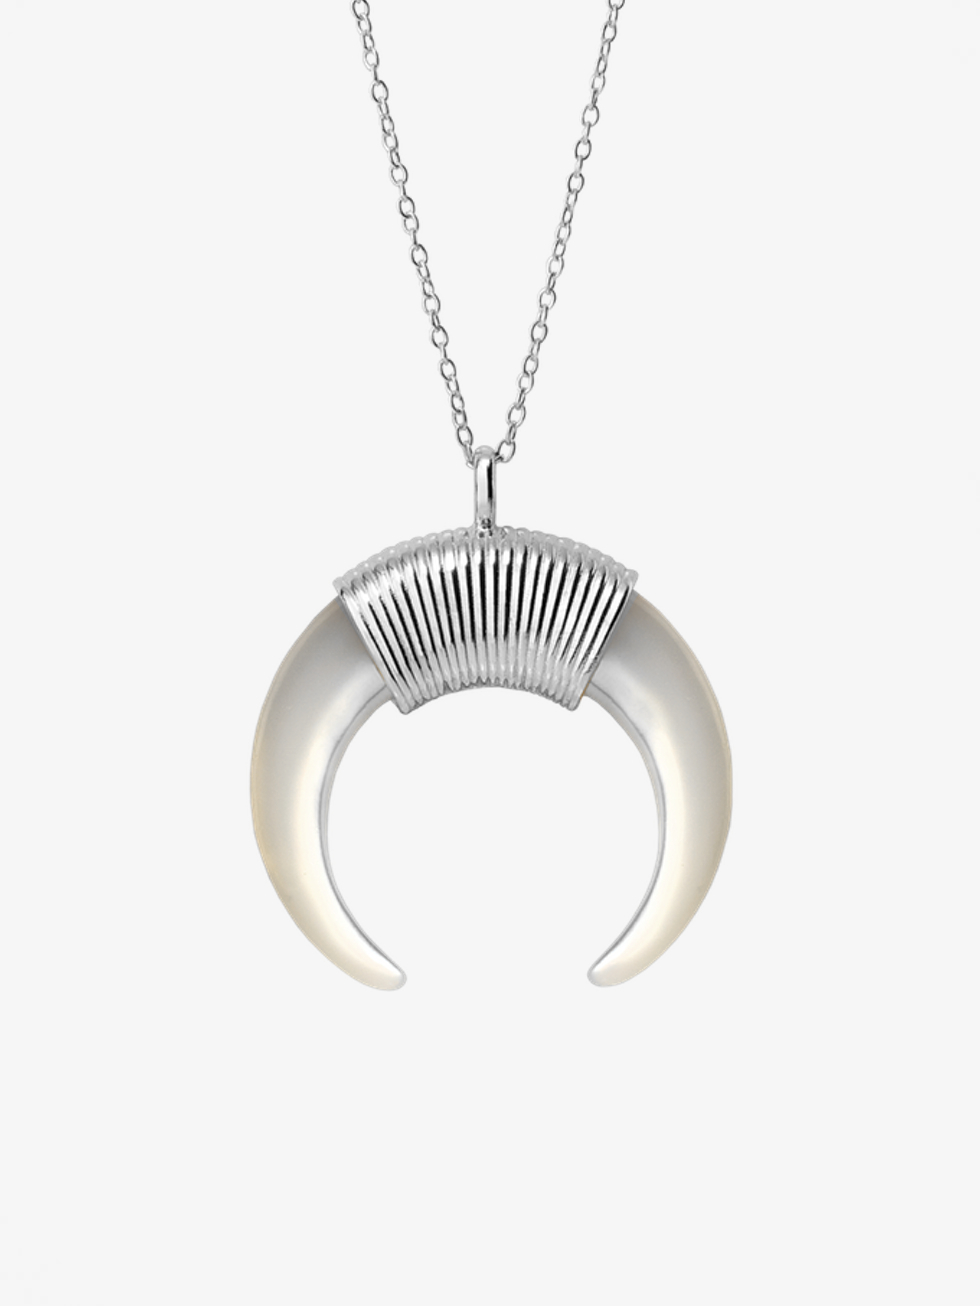 MAXI HORN NACAR silver necklace